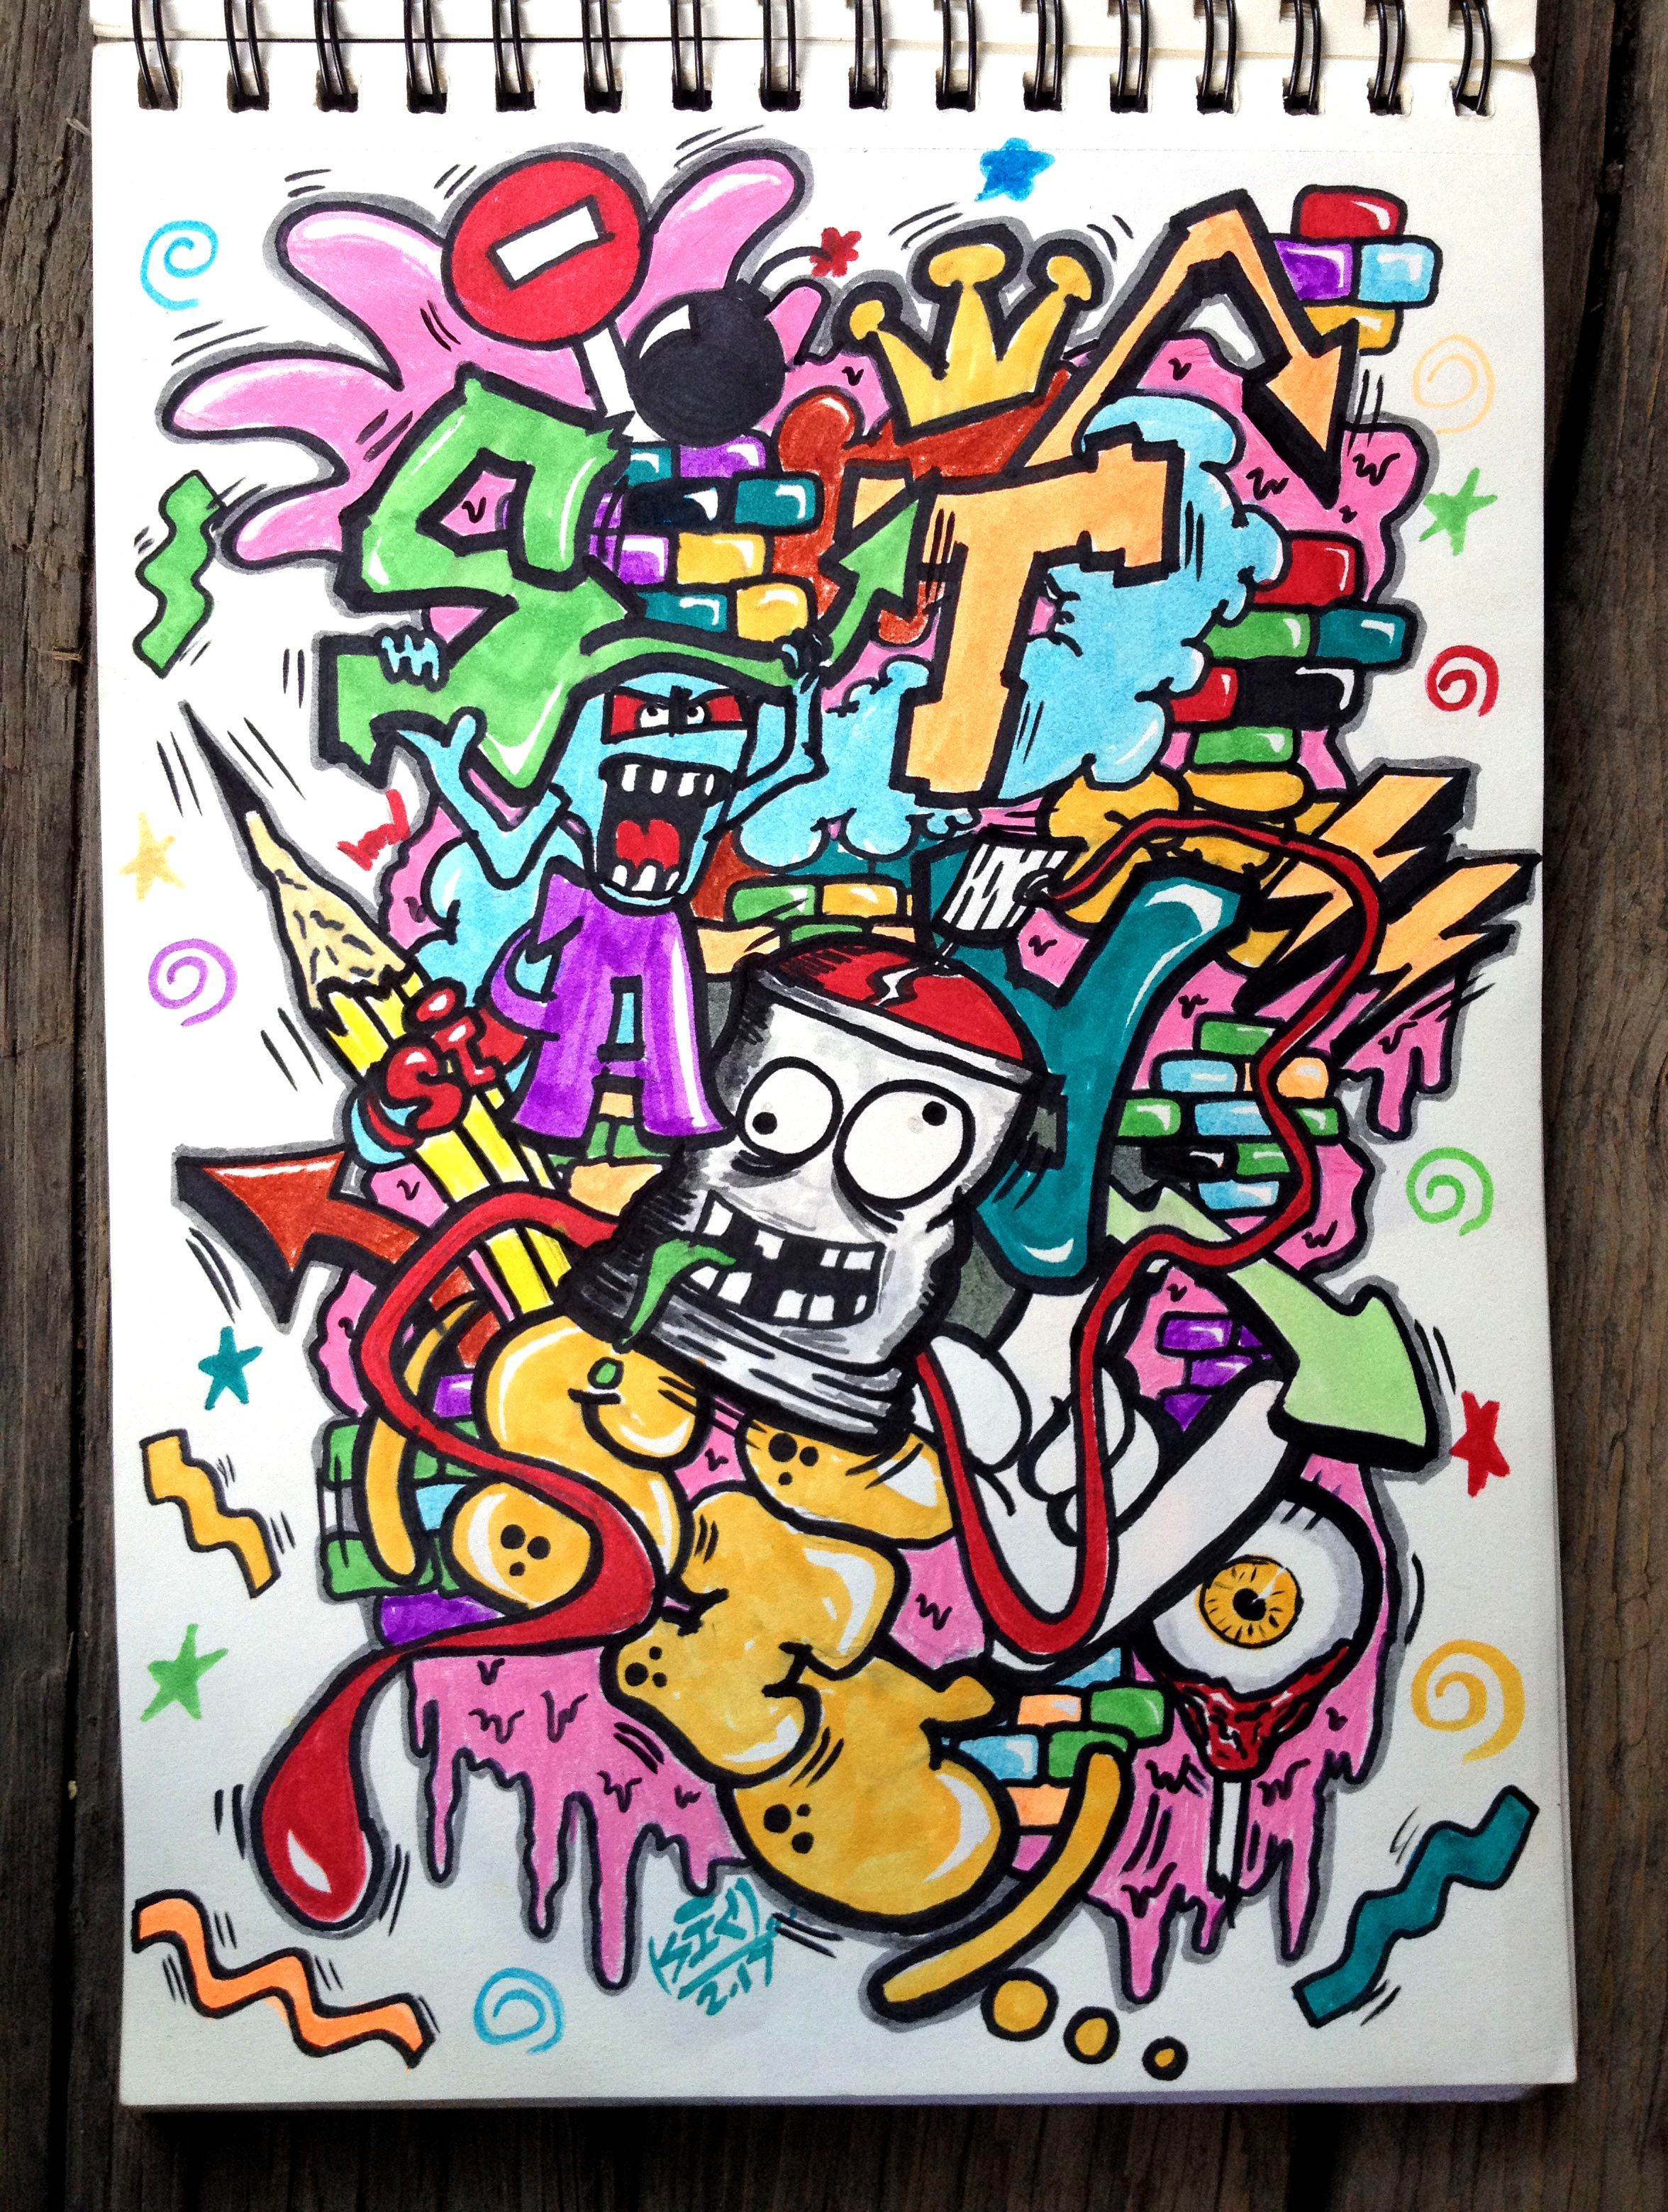 Graffiti, Sketchbooks, Sketch Books, Graffiti Artwork